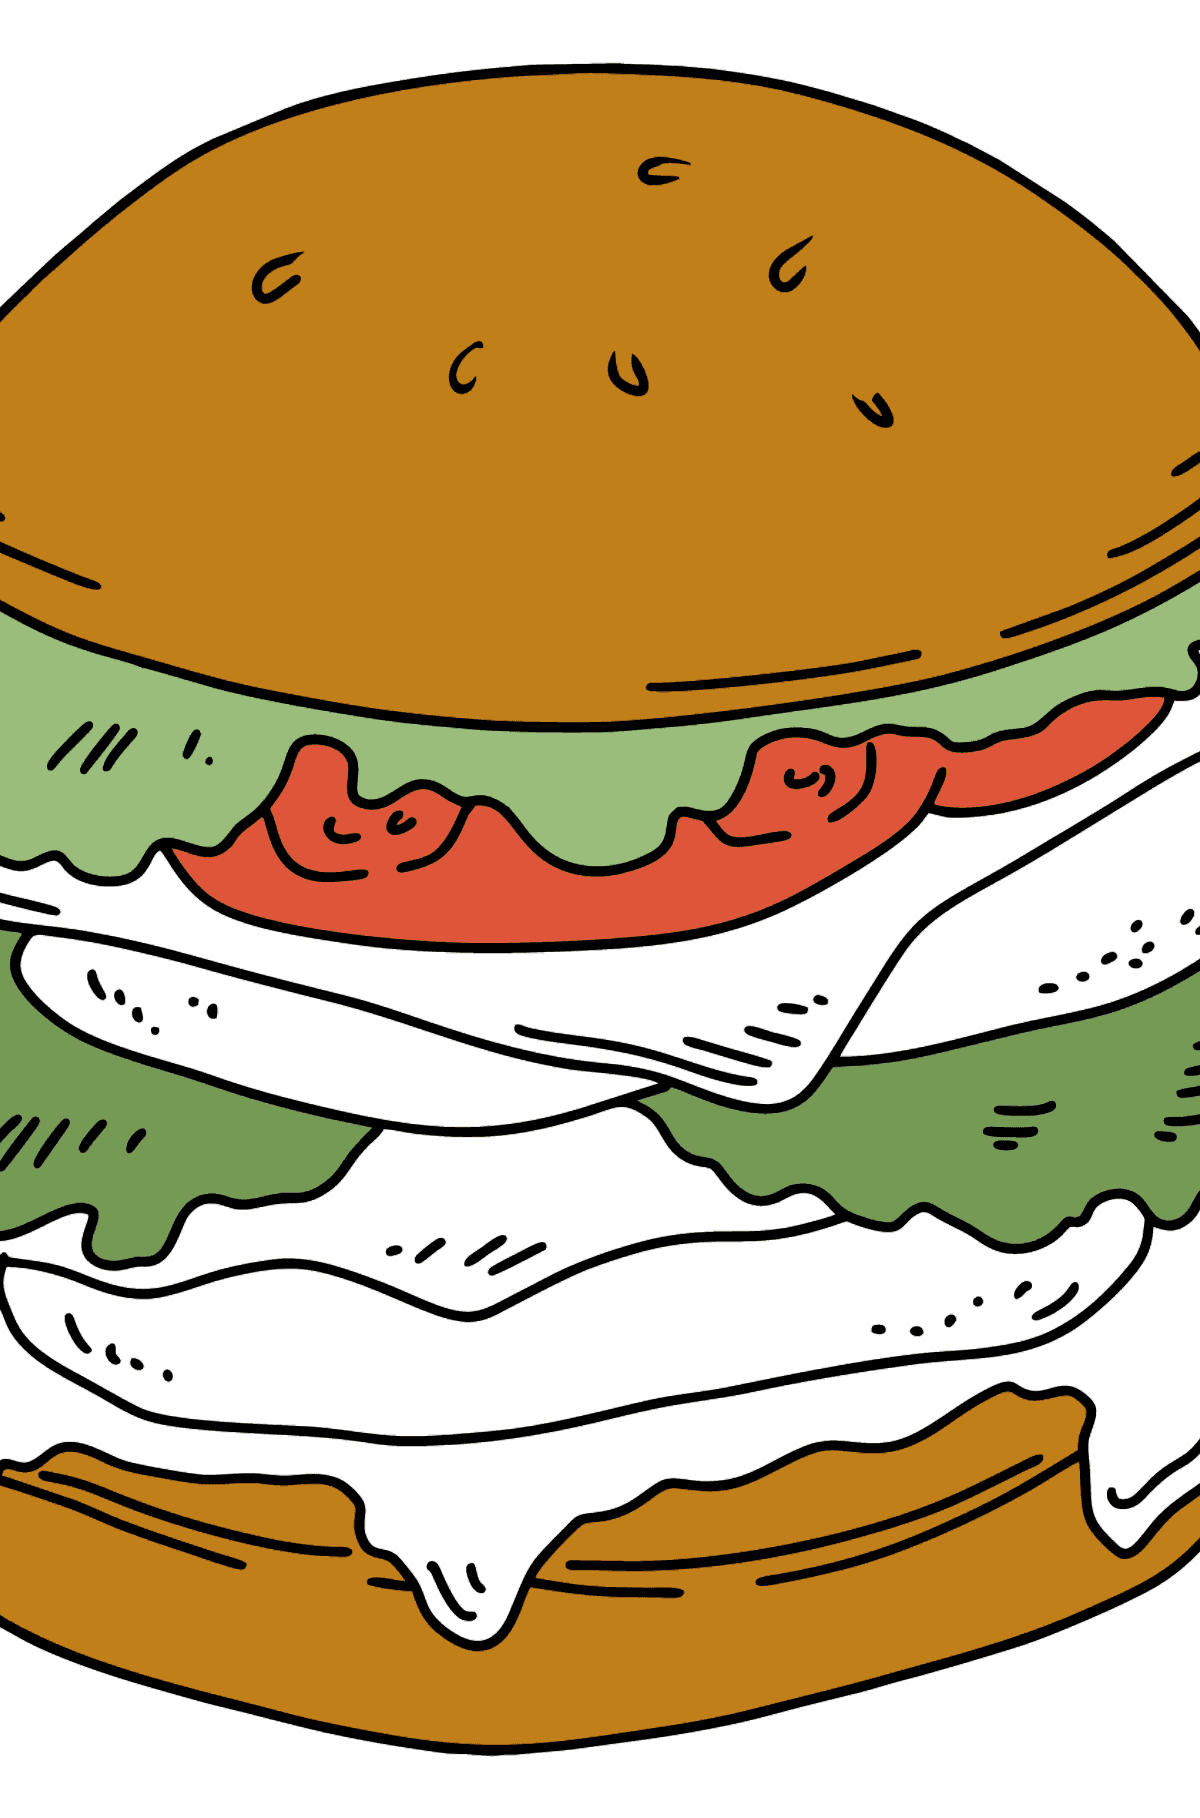 Juicy Burger coloring page - Coloring Pages for Kids